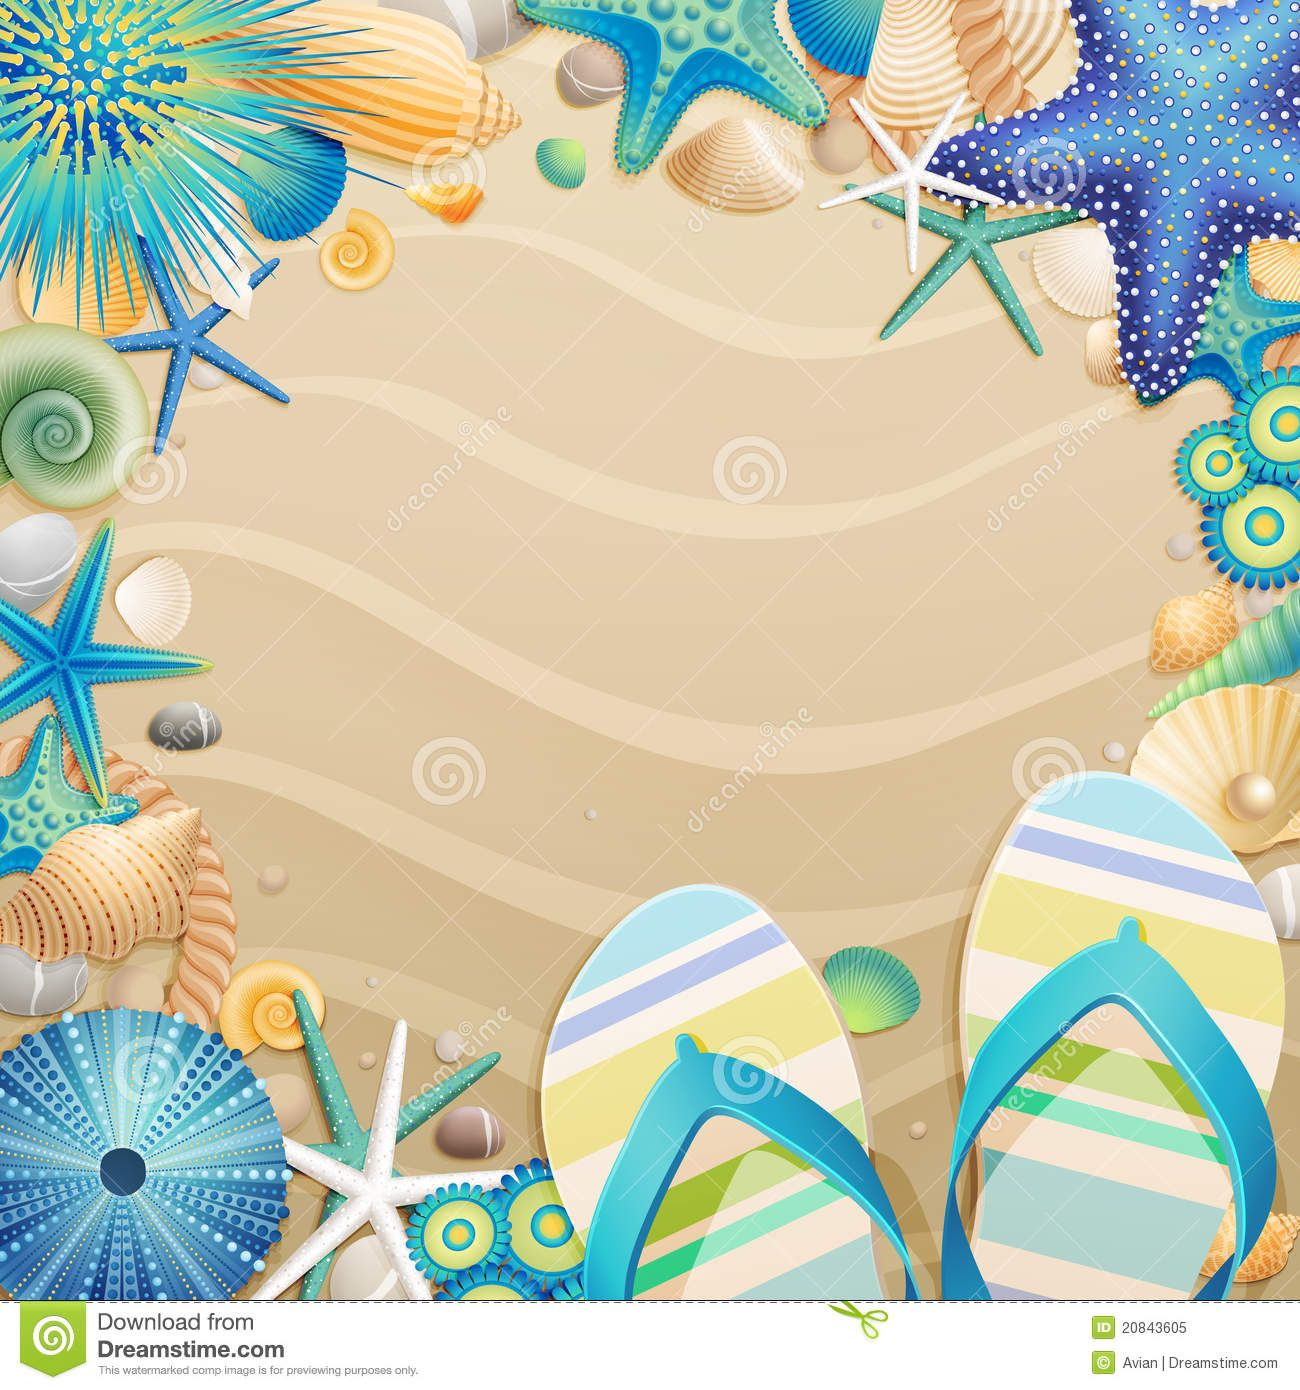 hight resolution of free clipart images of flip flops on the beach google search